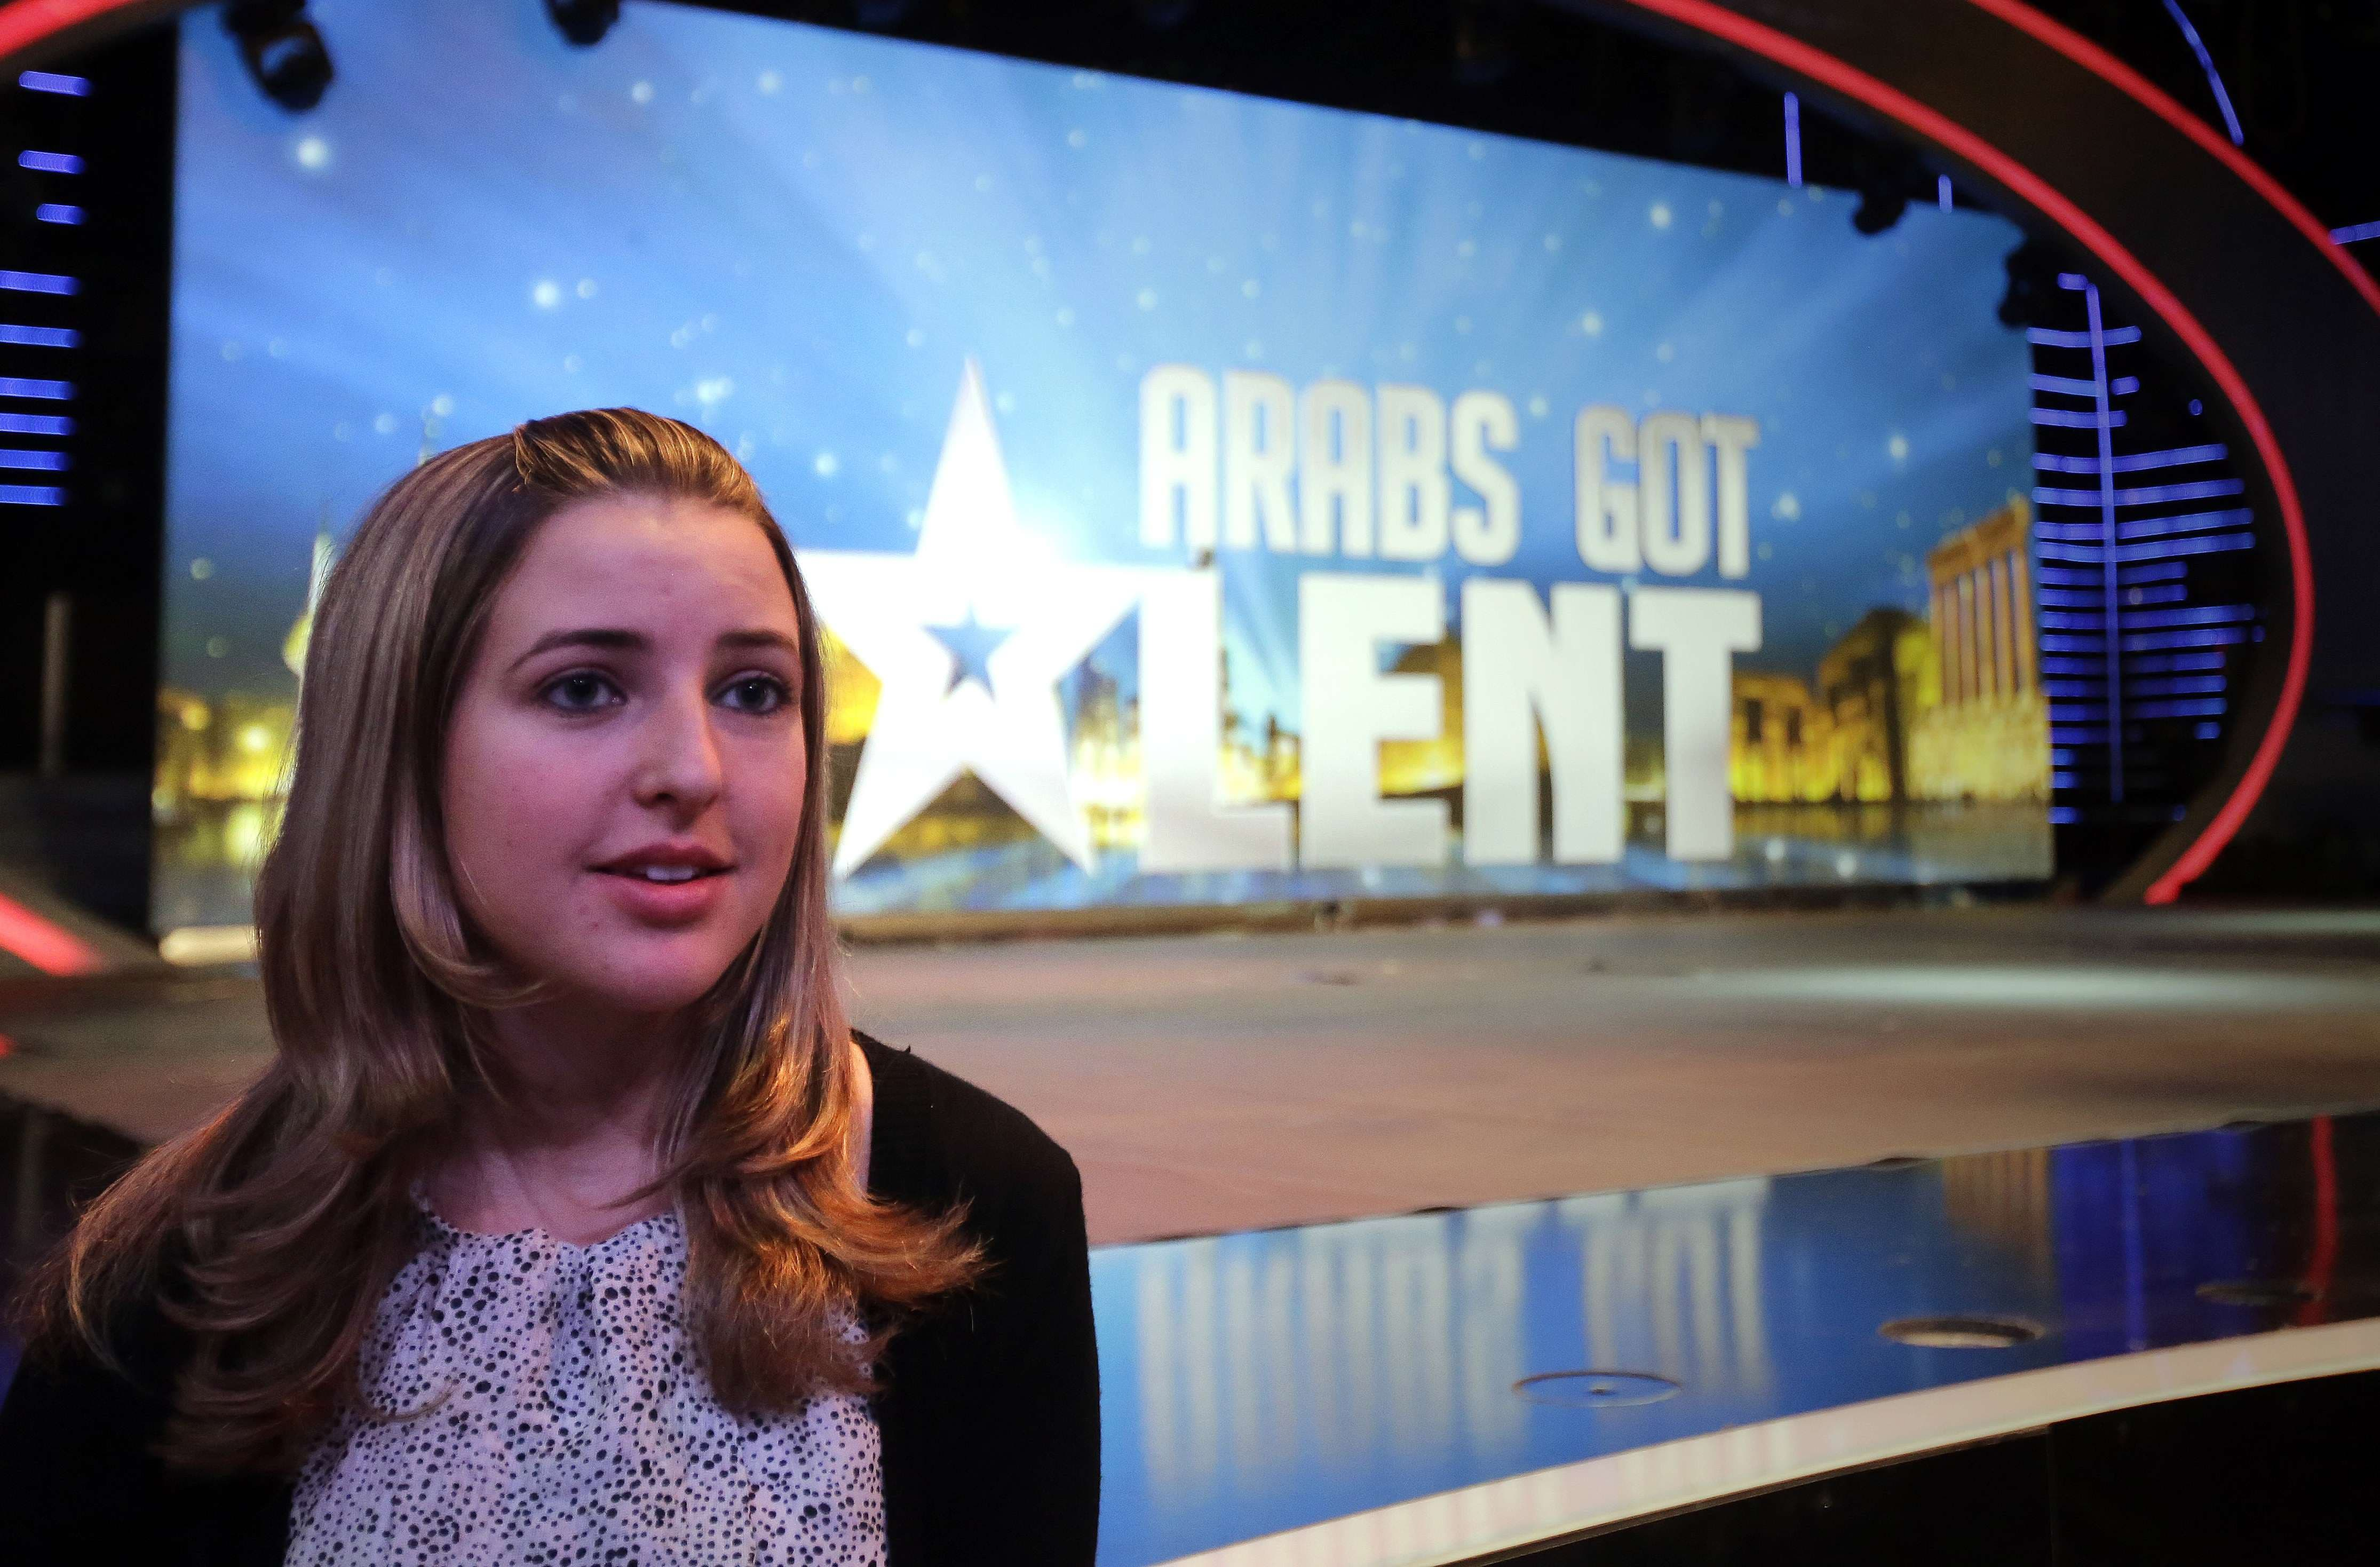 """Jennifer Grout, the American contestant in the pan-Arab TV program """"Arabs Got Talent"""" is seen at the MBC television station studios in Zouk Mosbeh, north of Beirut, during rehearsals on Dec. 4, 2013. (AFP)"""